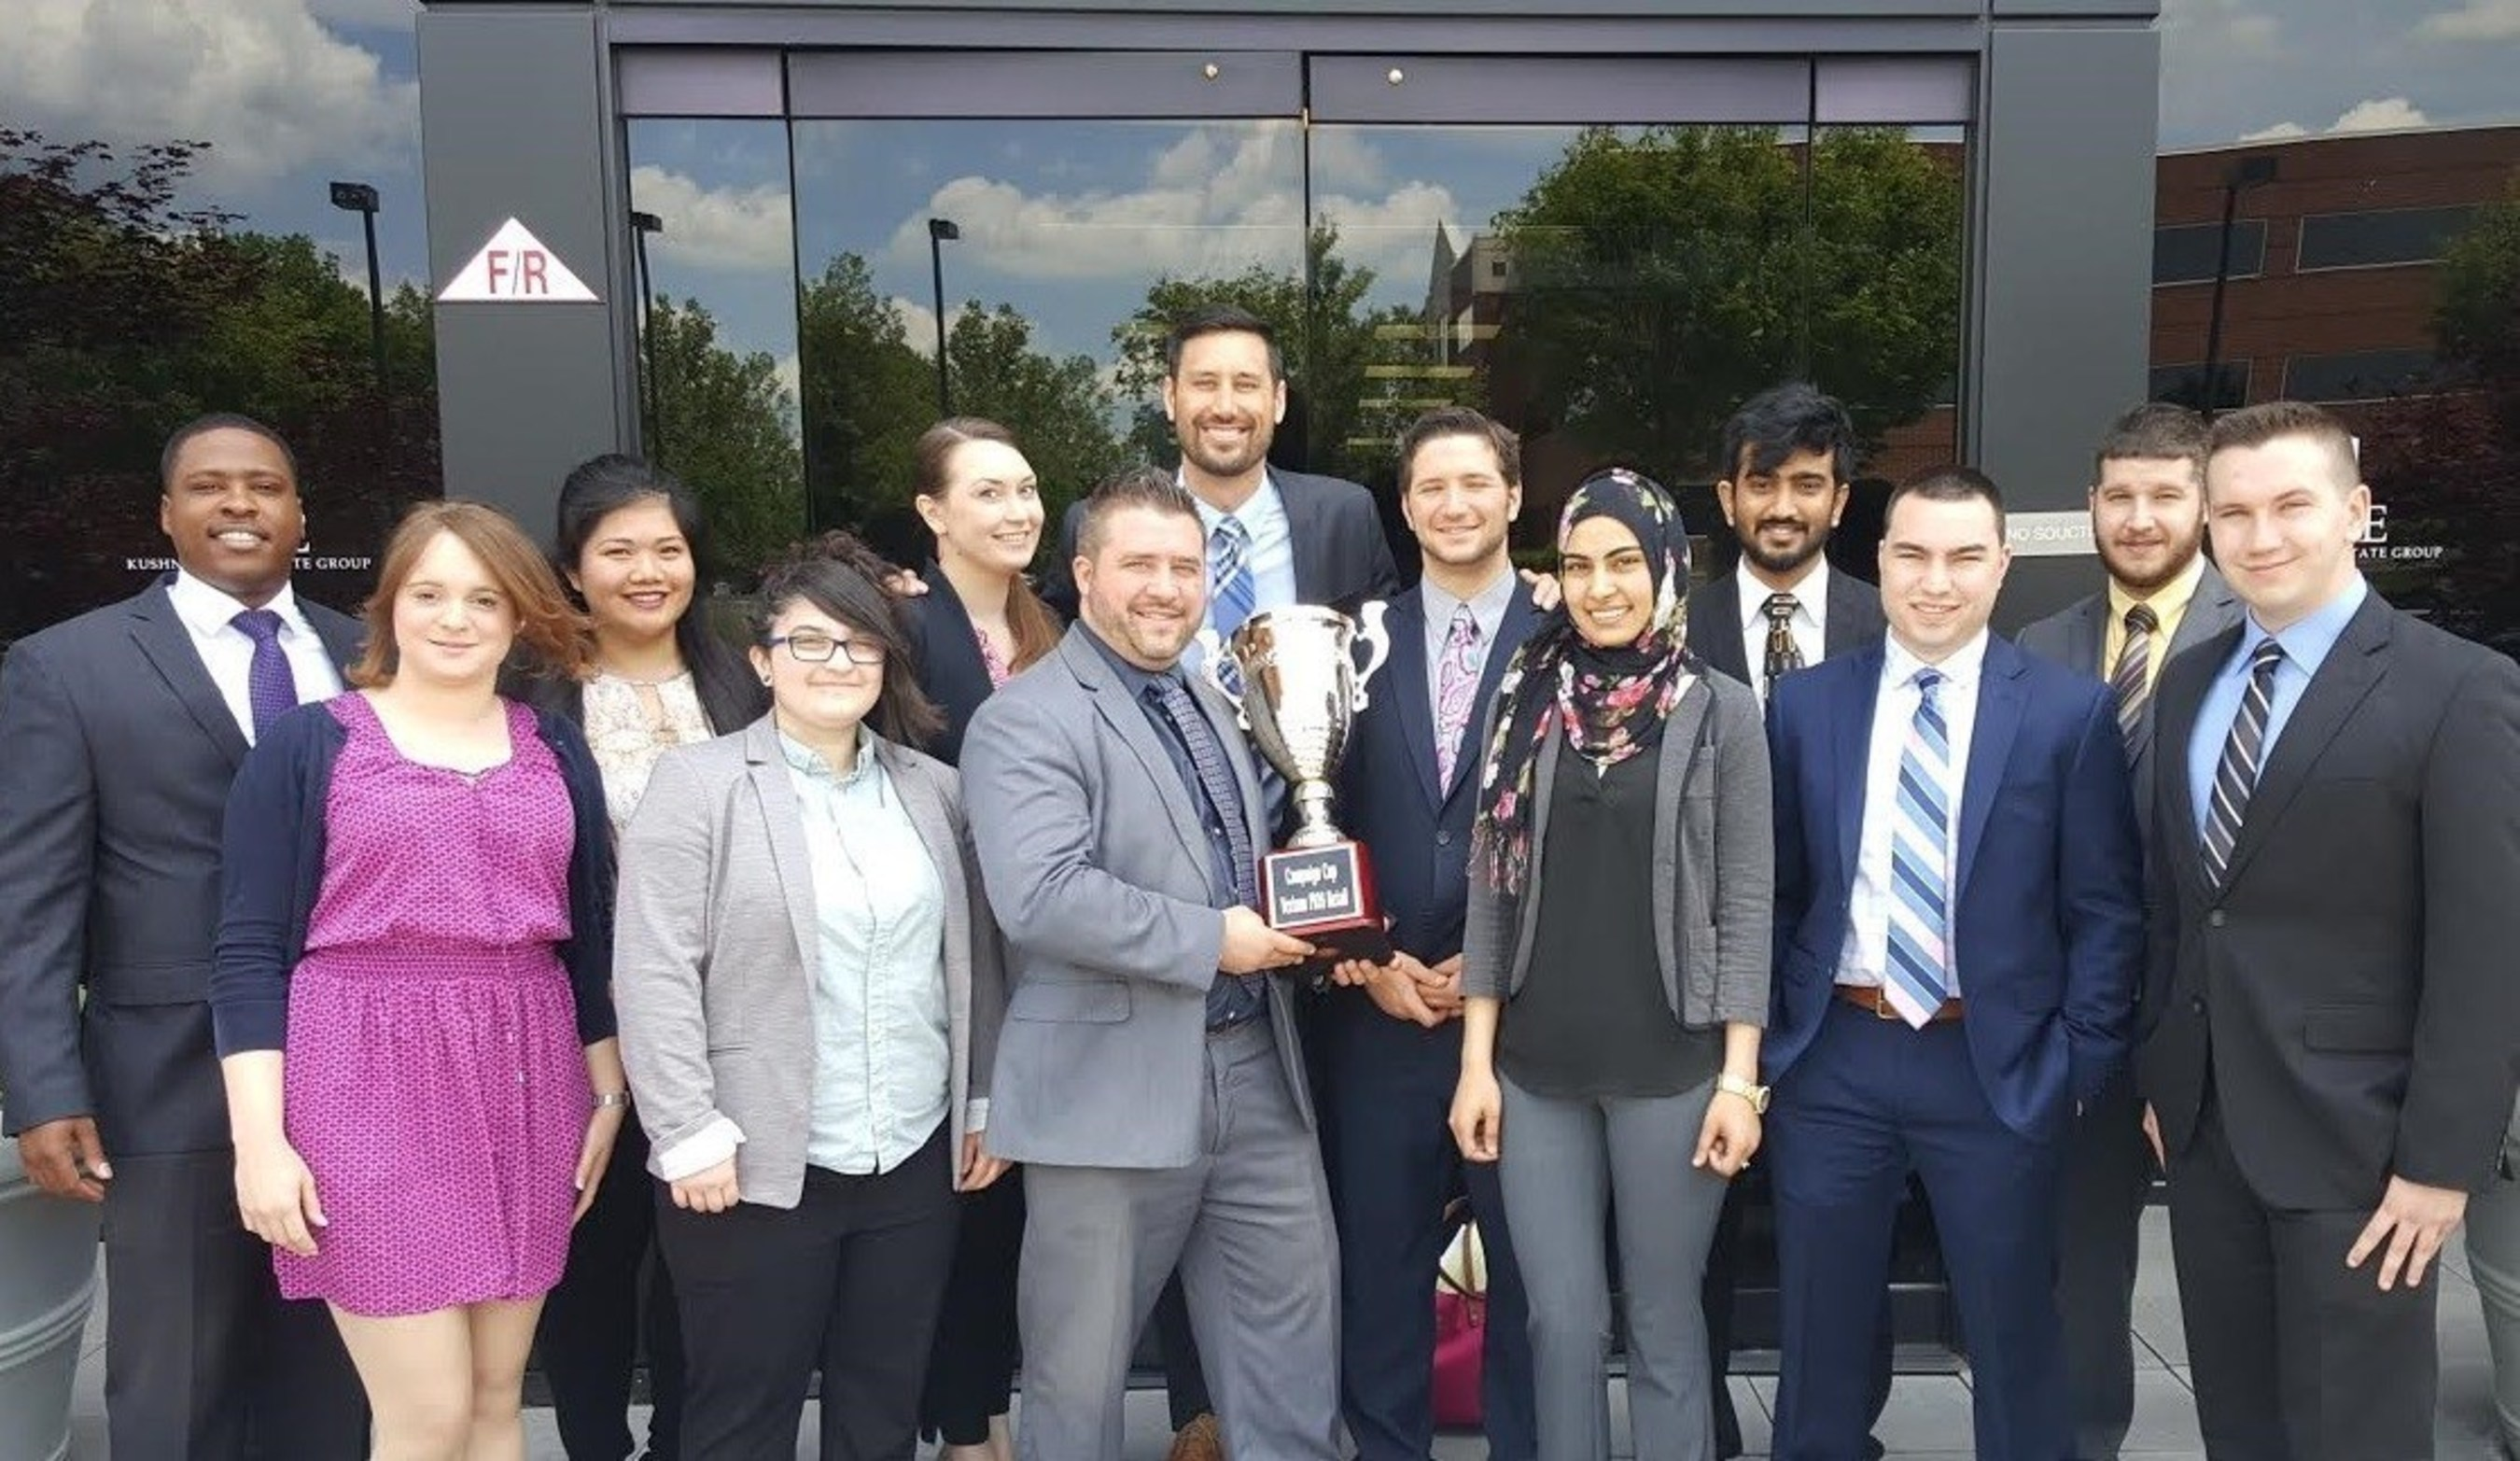 New Jersey-based sales and marketing firm Viogee received national sales campaign honors for the first quarter of 2016. President Martin Chan and Viogee staff were honored to receive the quarterly Campaign Cup award.